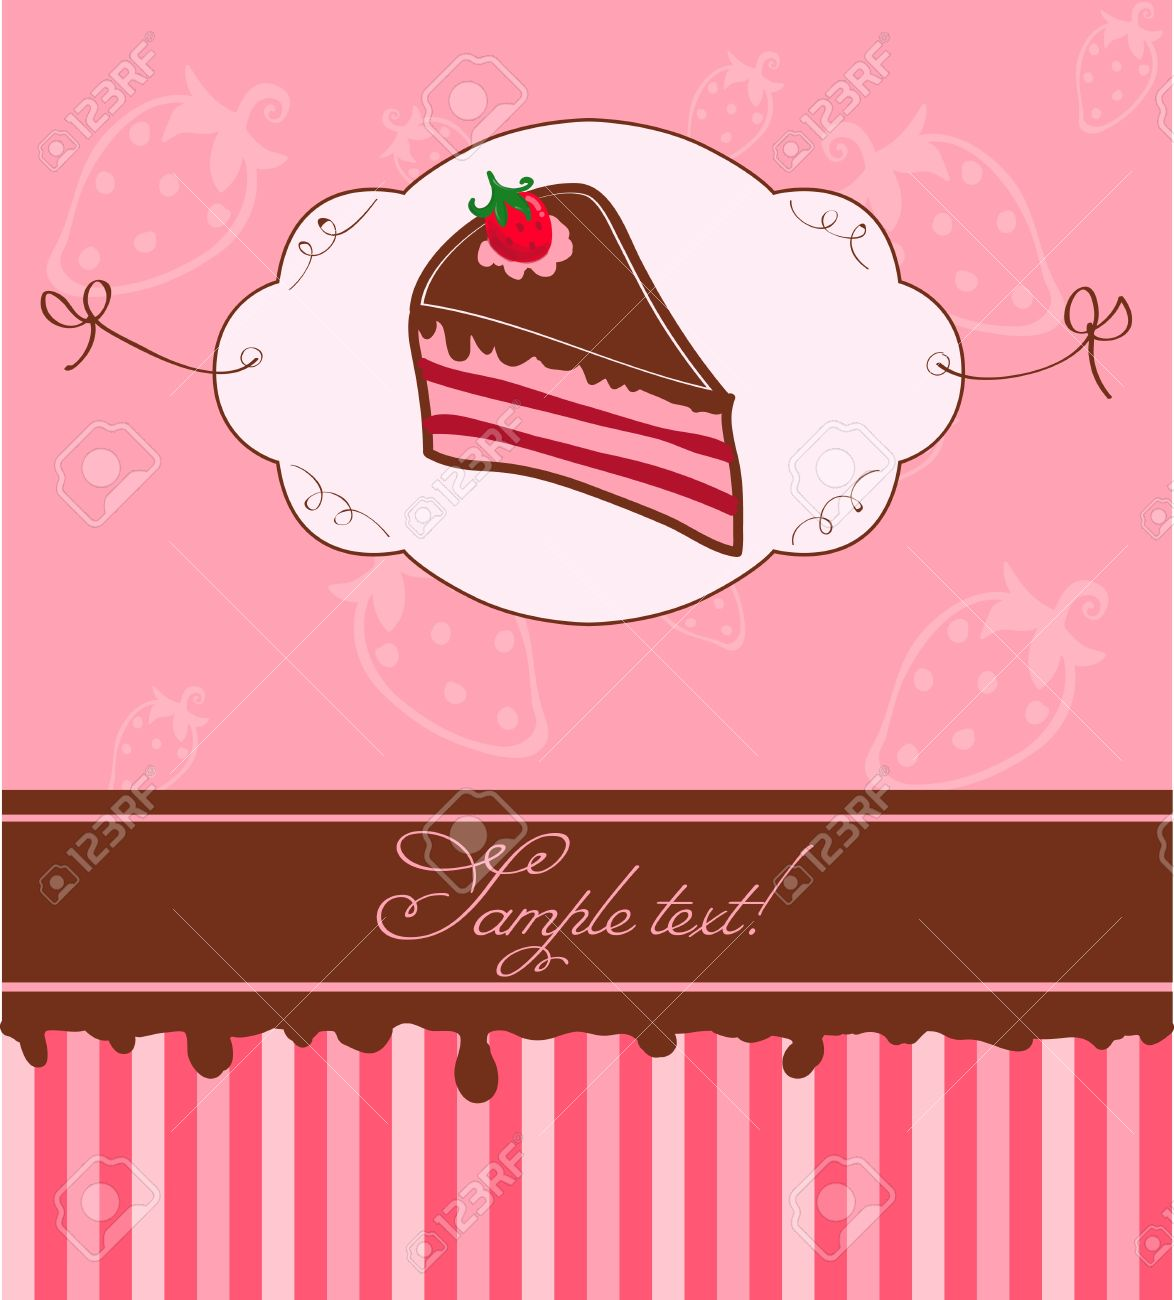 Cute Pink Invitation Postcard with Strawberry Cake Stock Vector - 9141452